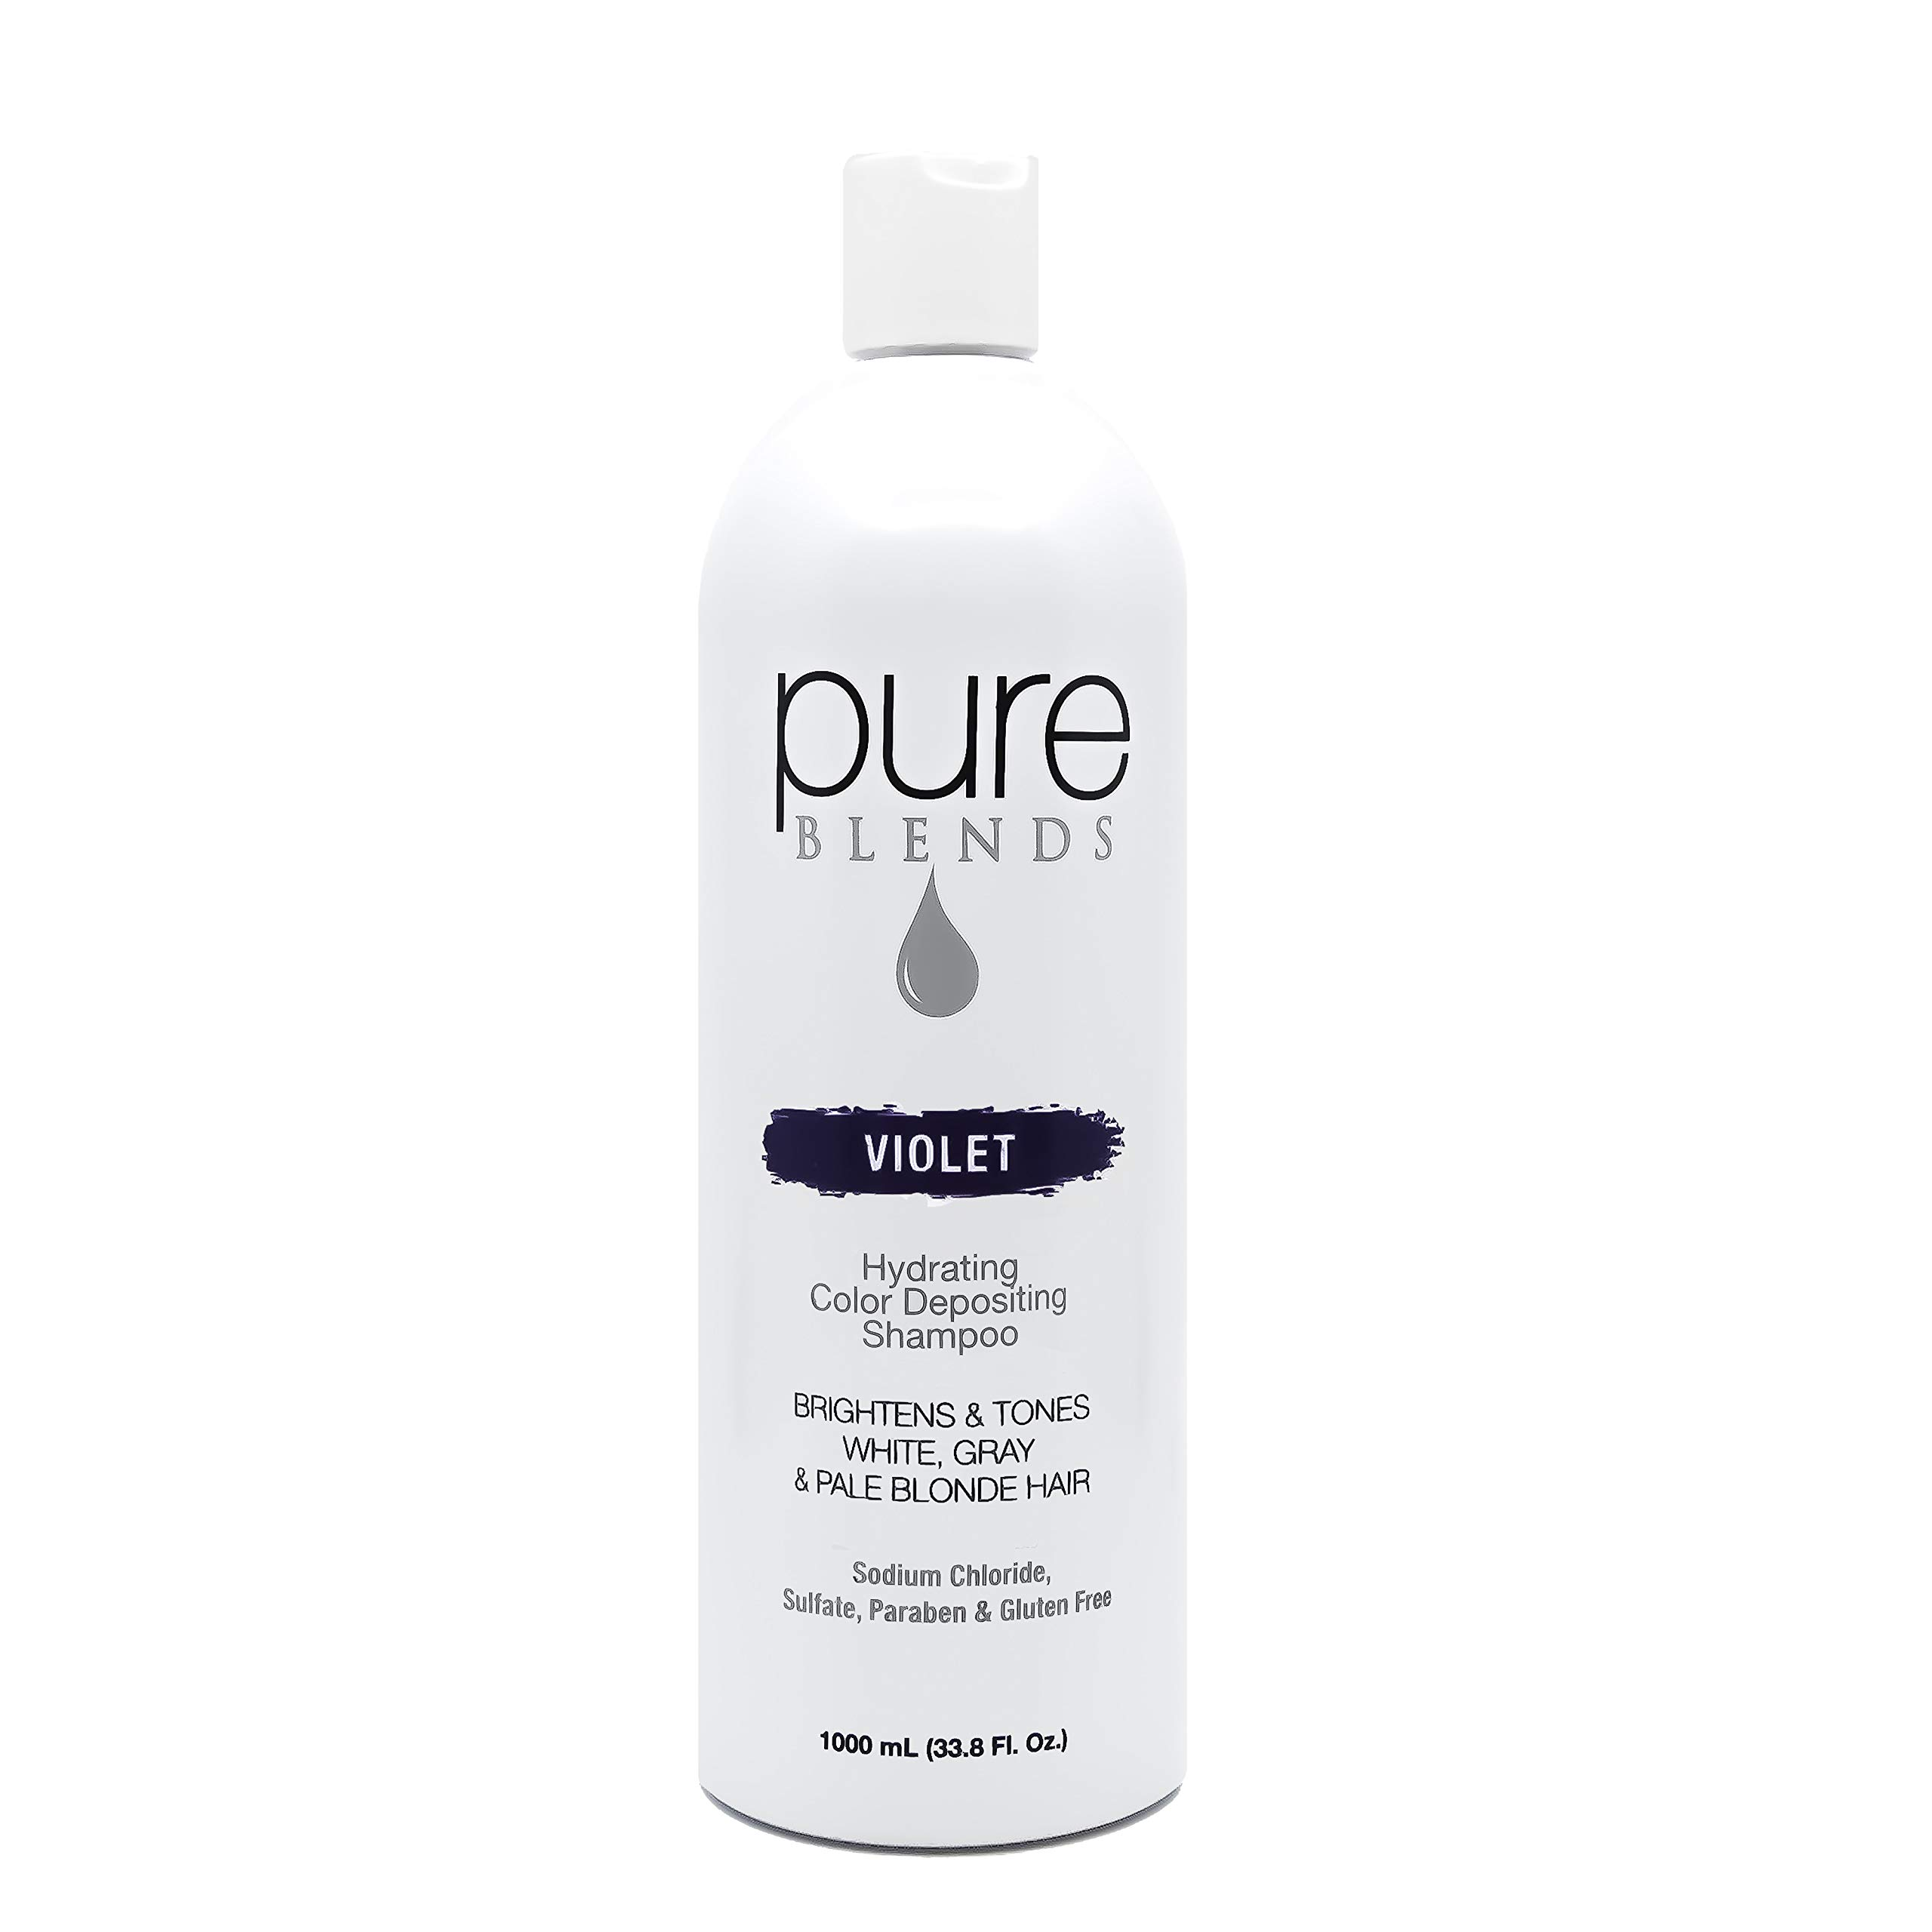 Pure Blends Hydrating Color Depositing Shampoo - Violet (White, Gray, Pale Blonde Hair) 33.8 Ounce - Salon Quality by Pure Blends